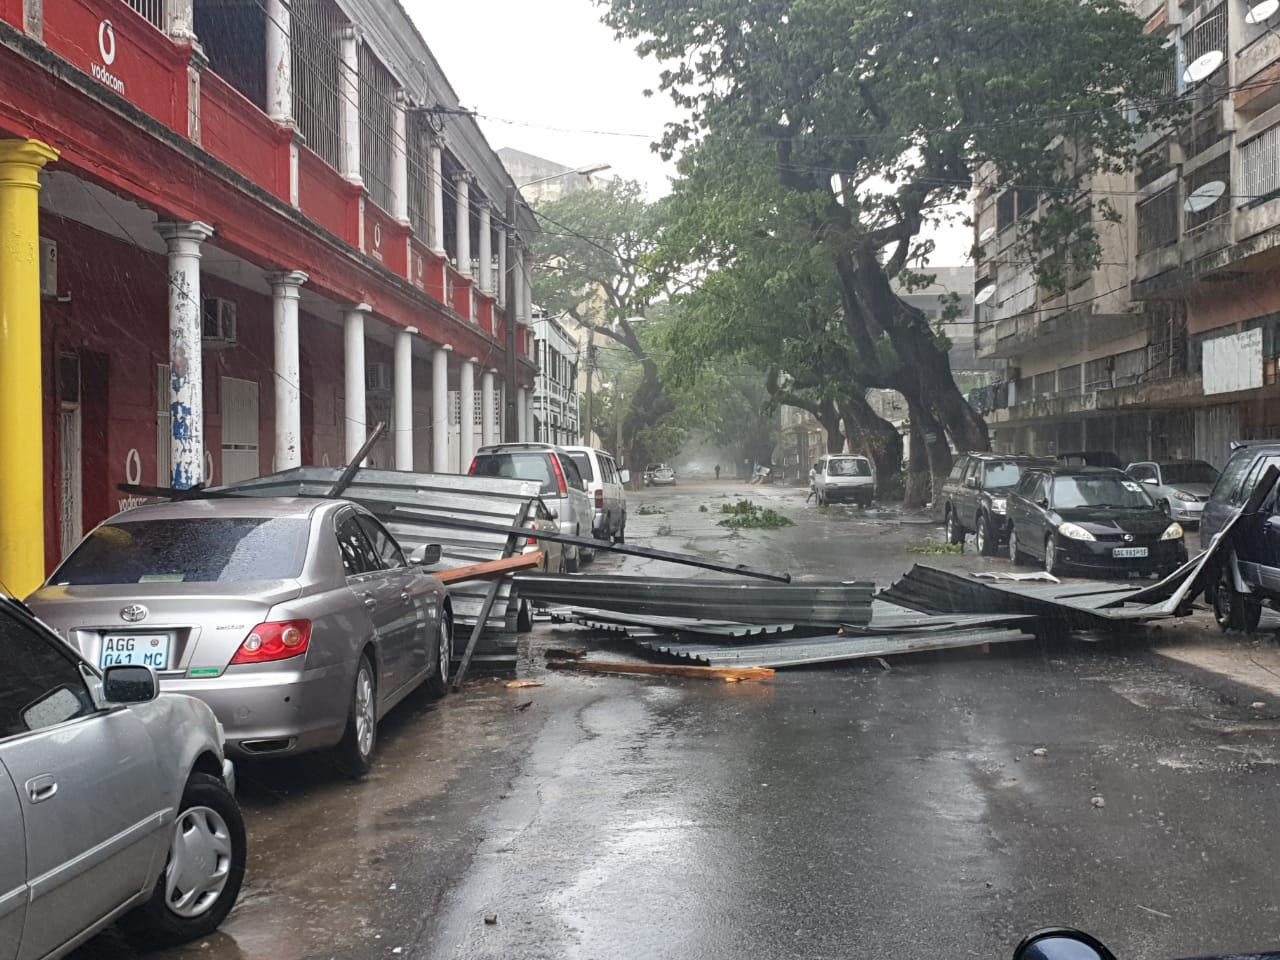 Tropical cyclone Idai battered Mozambique's coastal city of Beira